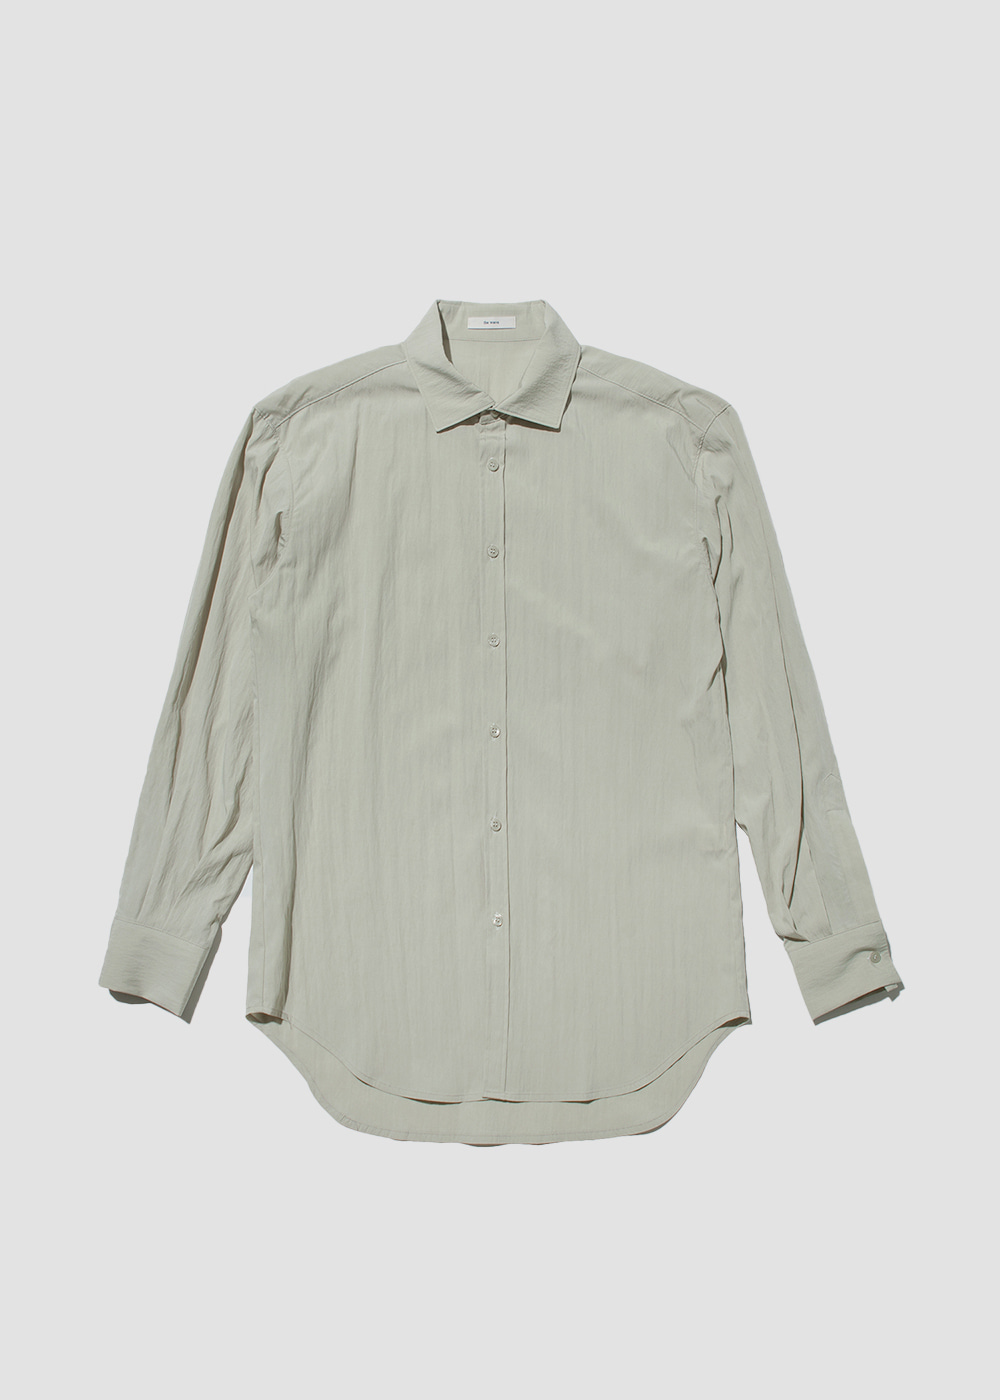 [THE WAVE] Draw Shirt